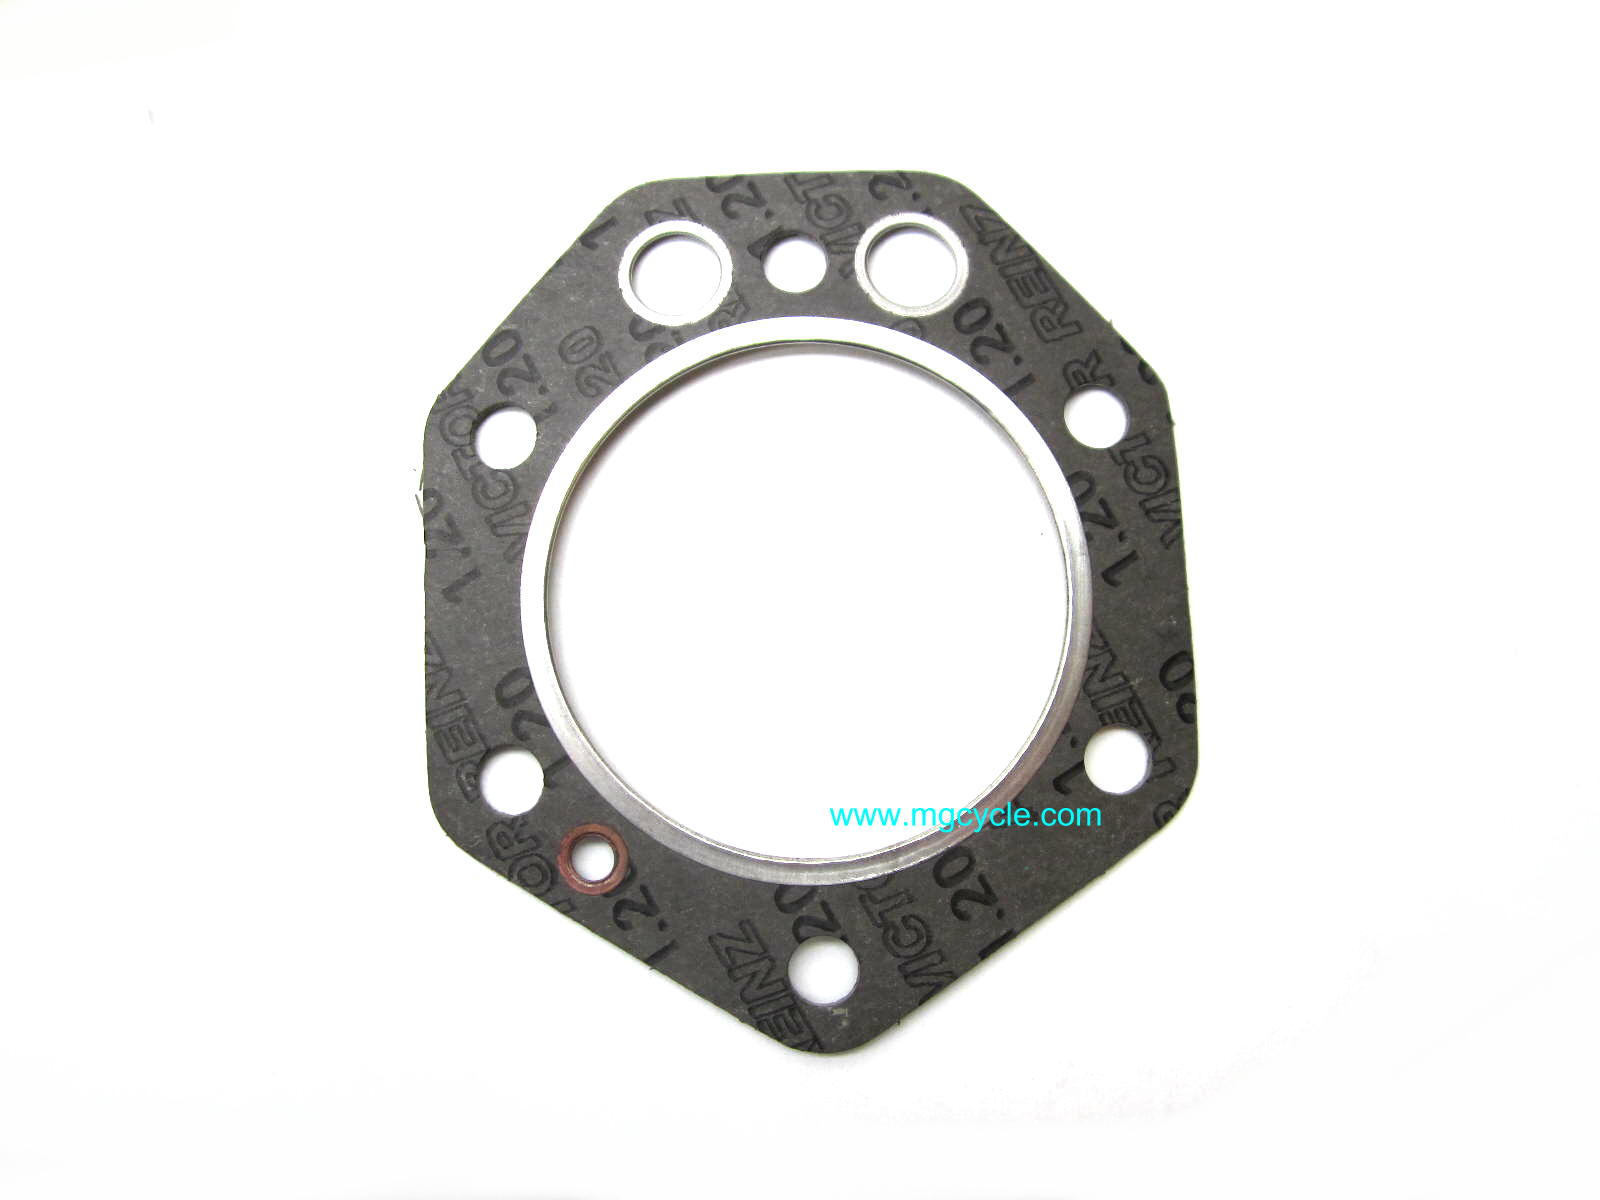 Head gasket for 850cc round fin T, T3, T4, 850 LeMans, LM II